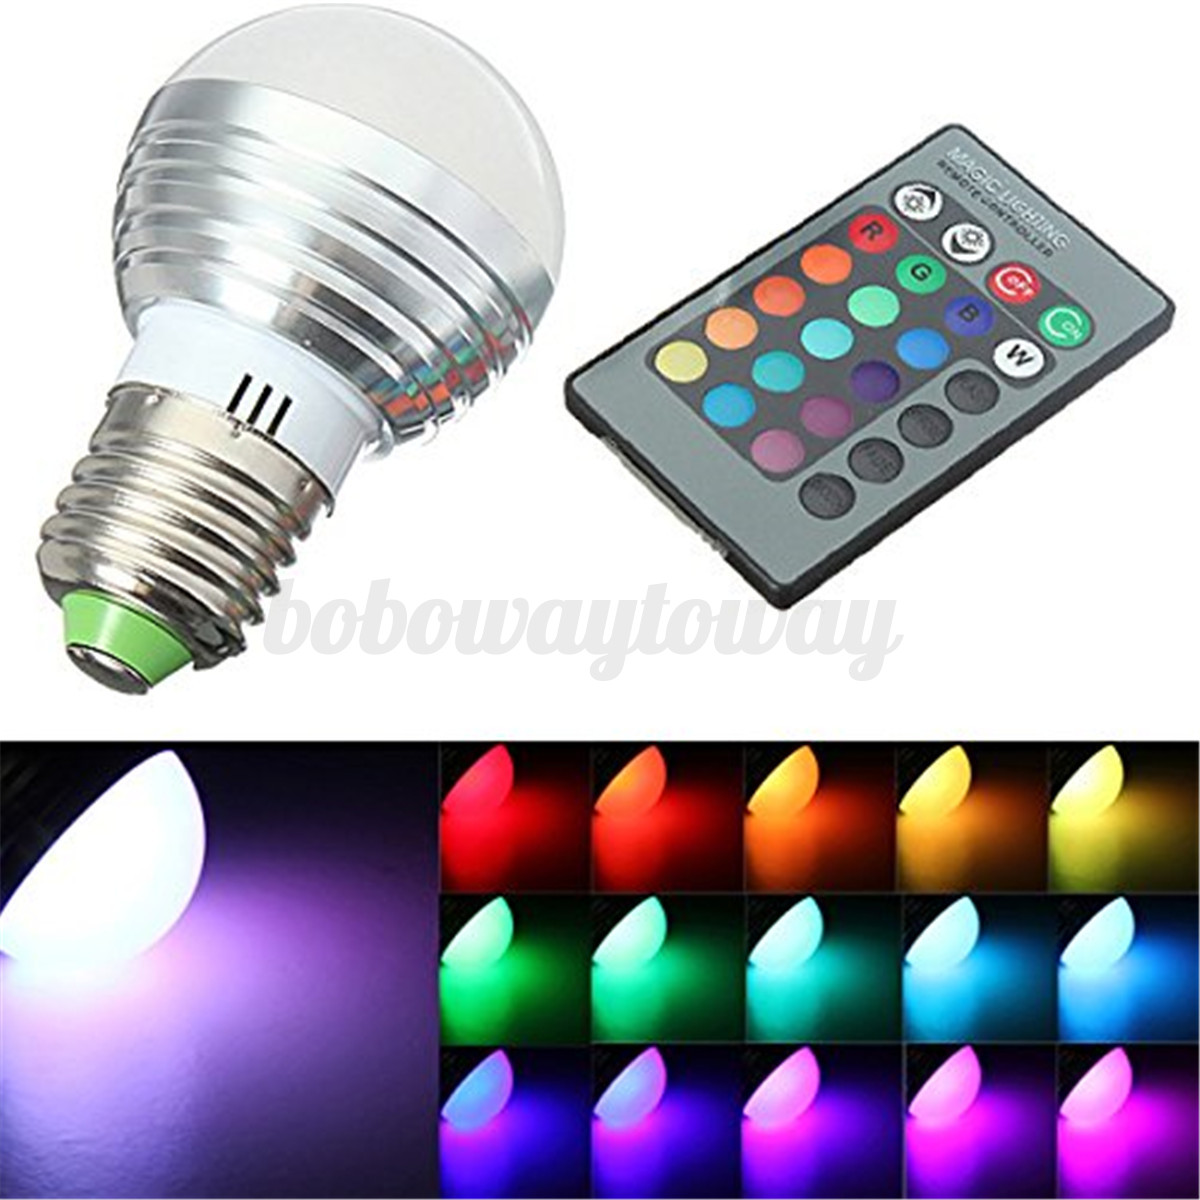 gu10 e14 e27 3w rgb led kugel lampe birne licht strahler leuchte fernbedienung ebay. Black Bedroom Furniture Sets. Home Design Ideas